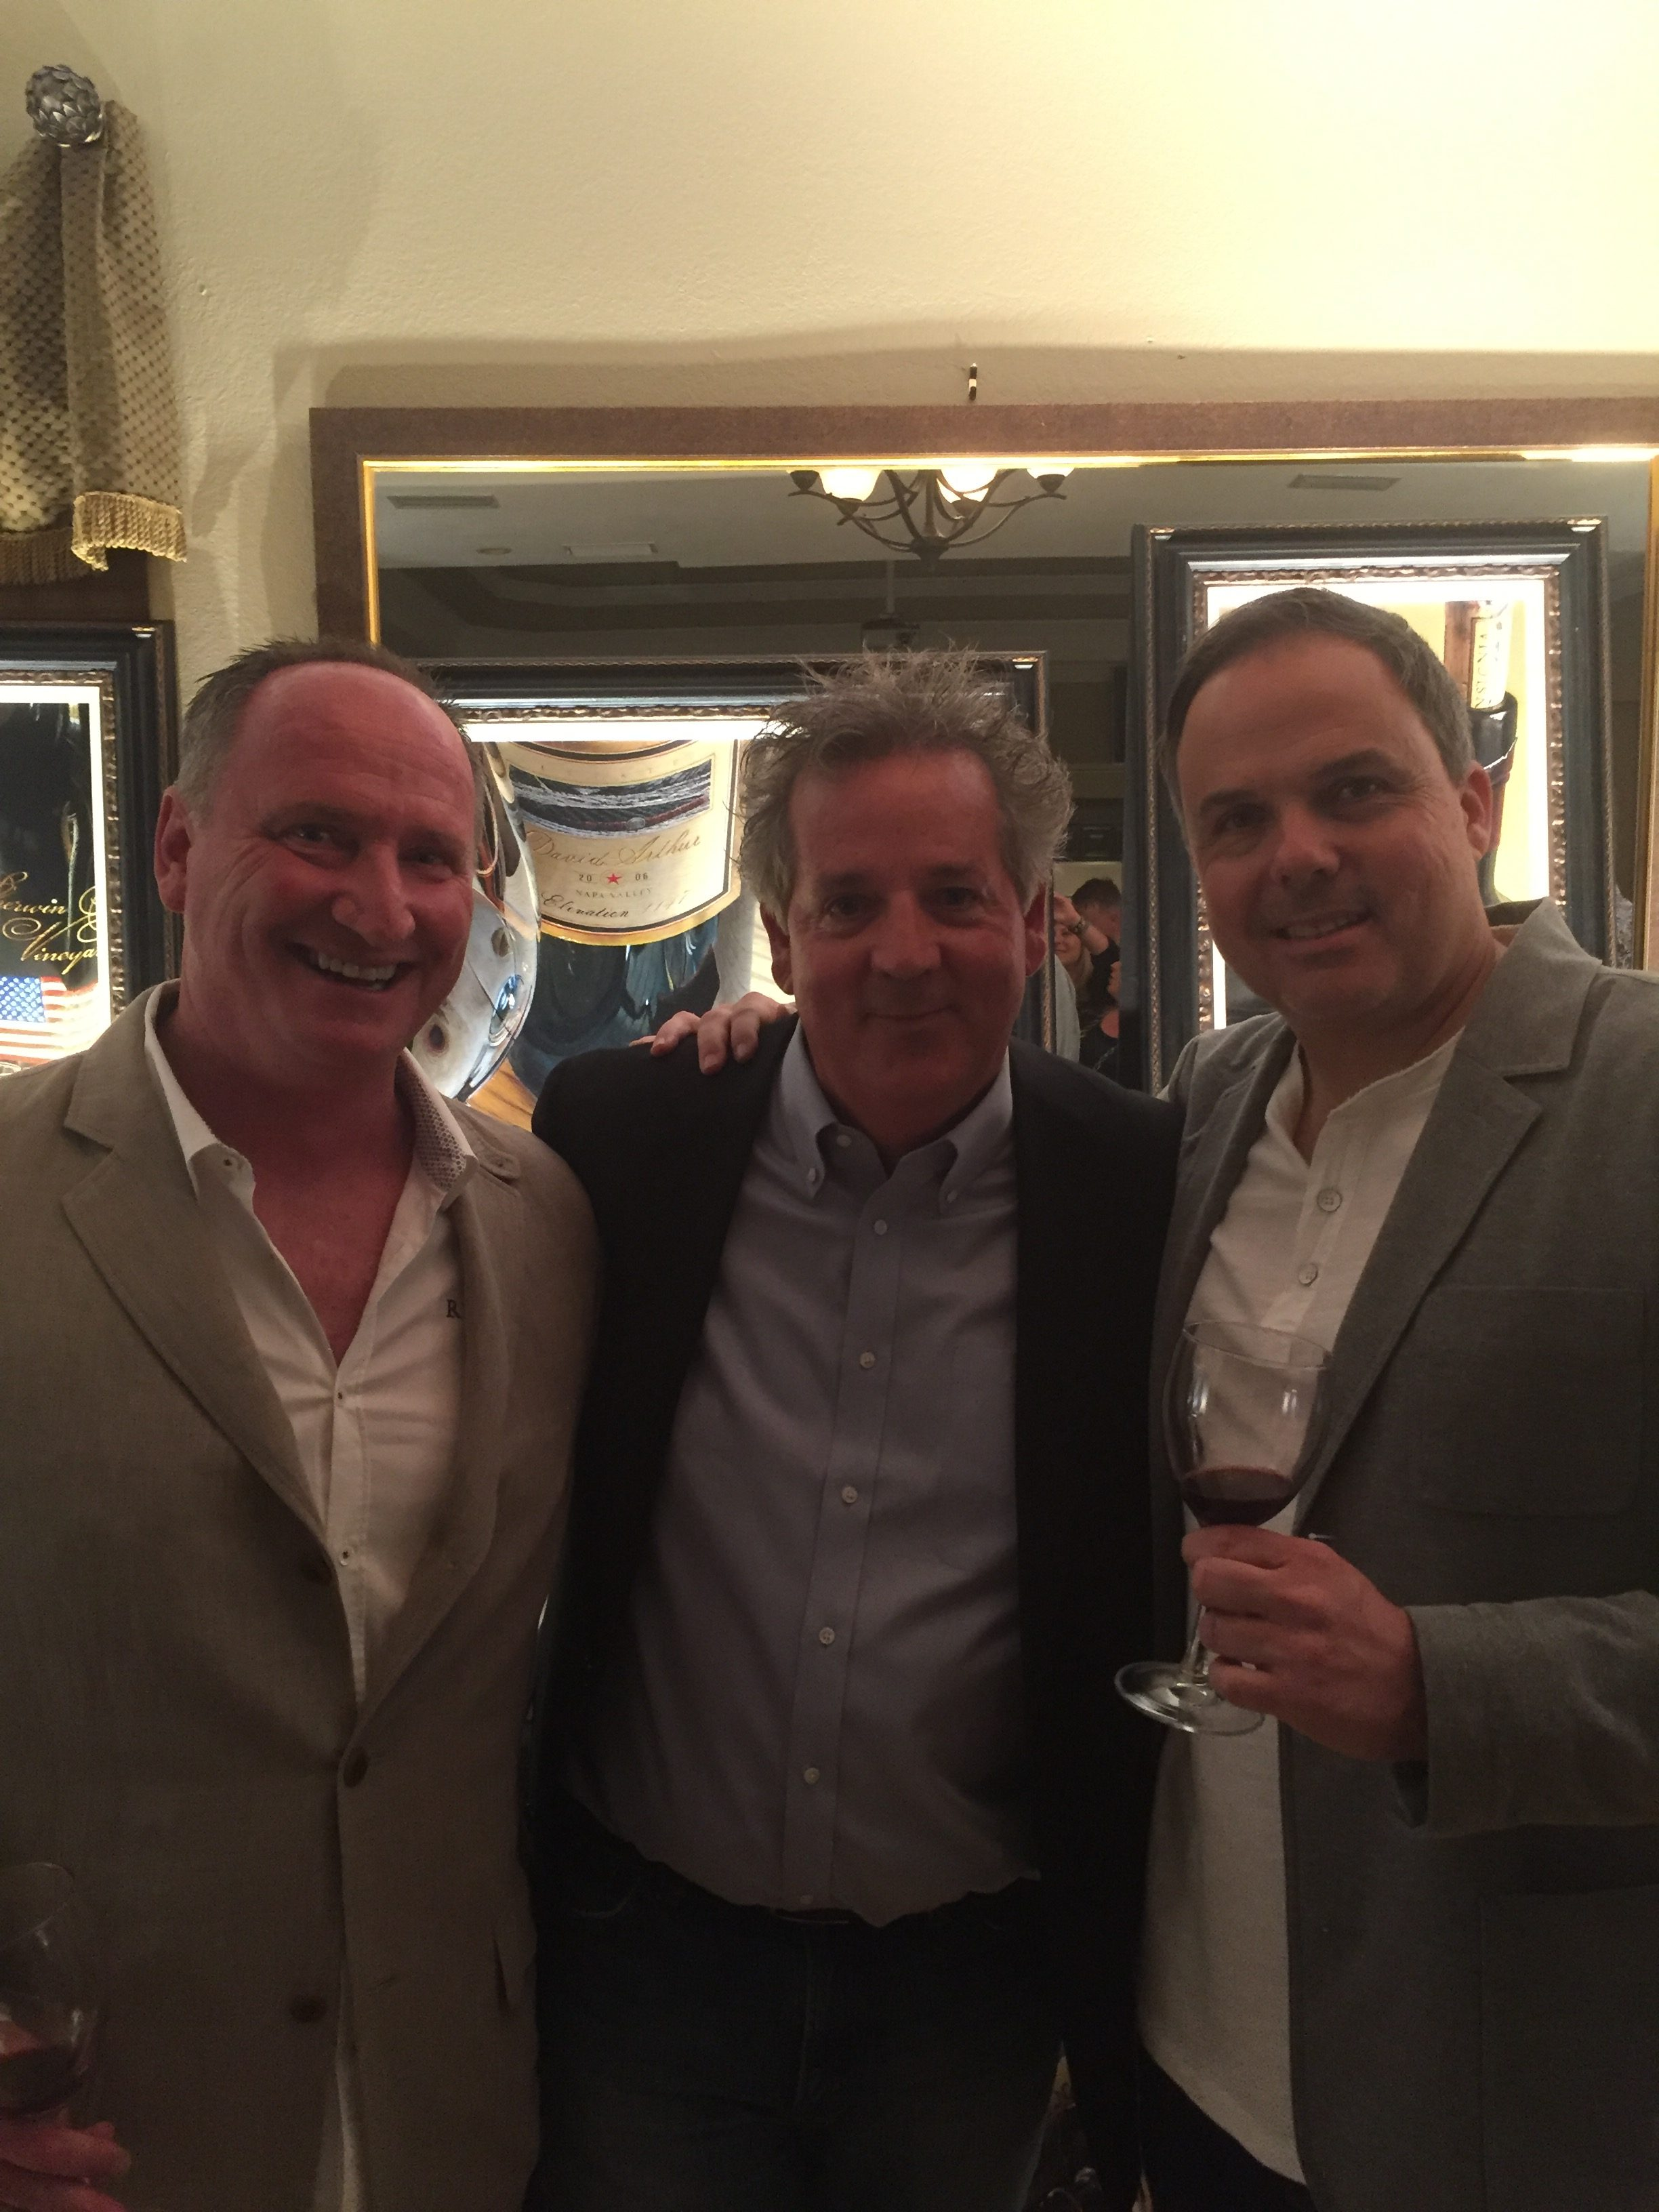 Dean Gray (Riverain), David Arthur Long (David Arthur) and Neil Ellman (Ellman Family Vineyards)